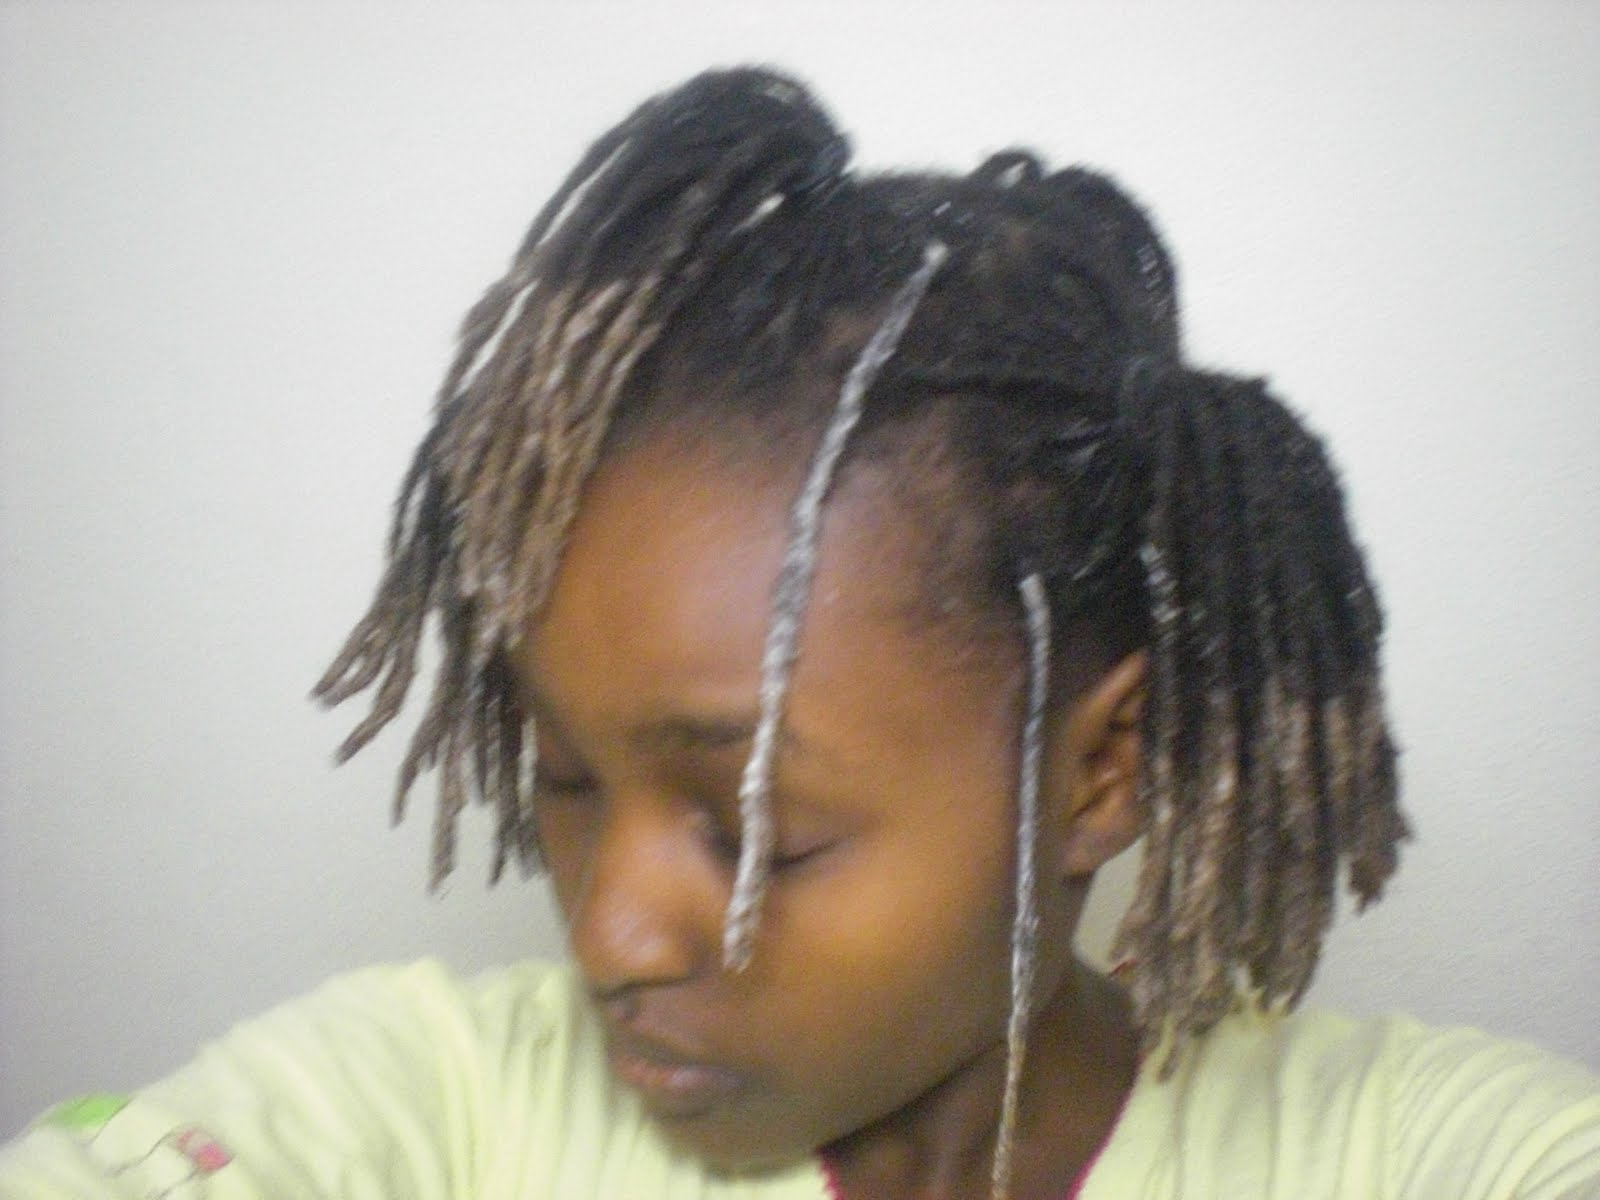 My Dreadlocks: Dying locks, how to do it right